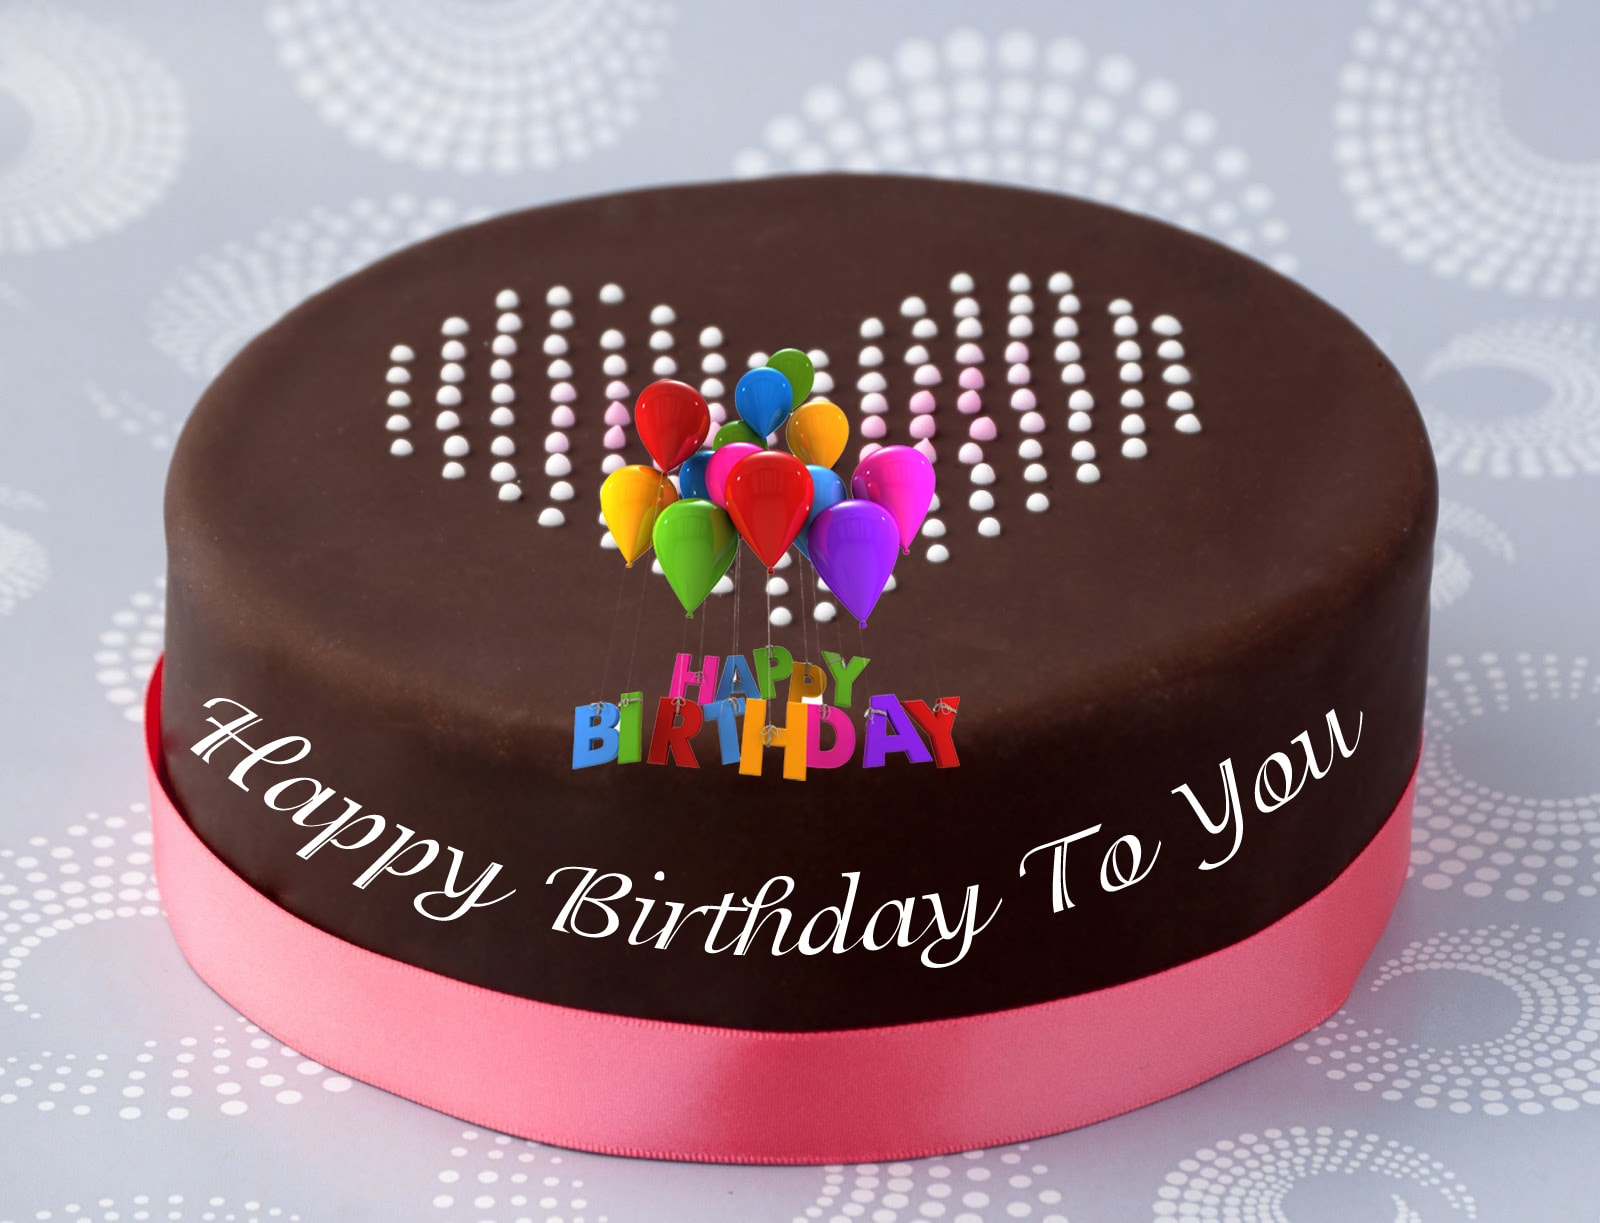 happy birthday cake picture messages ; 3c31ce3a0b5a5993b62dd84b0de6efb8